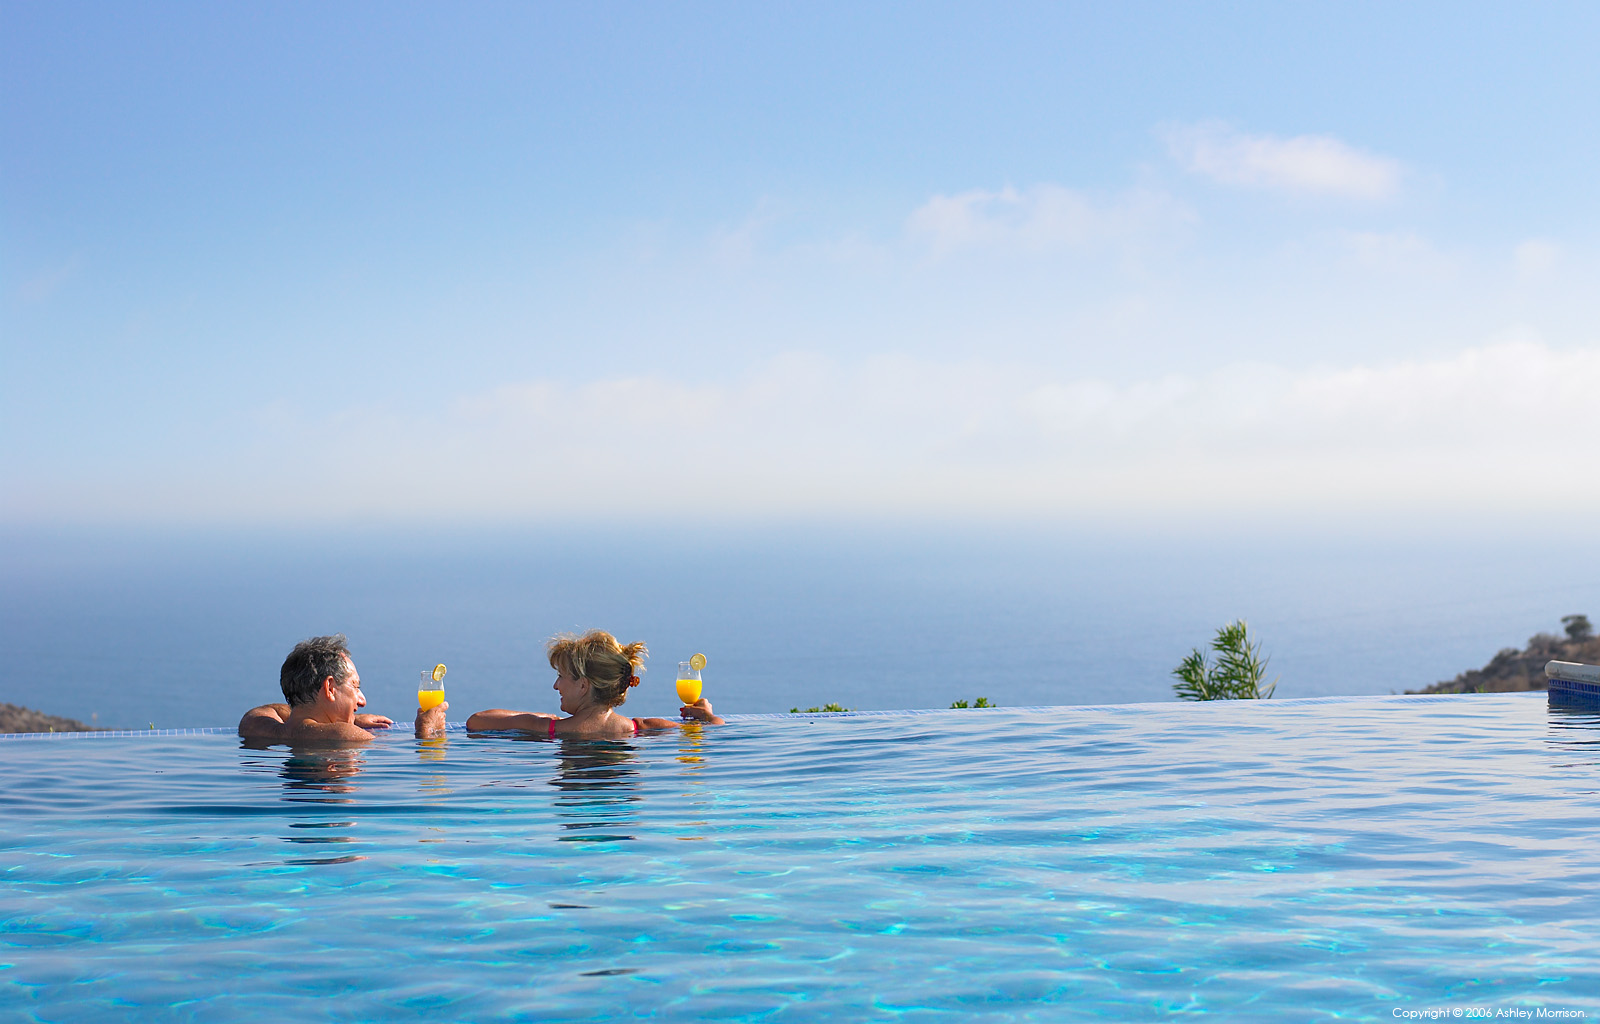 Rose and Julius Cohen in the infinity swimming pool outside their villa at the Aphrodite Hills complex in Cyprus.